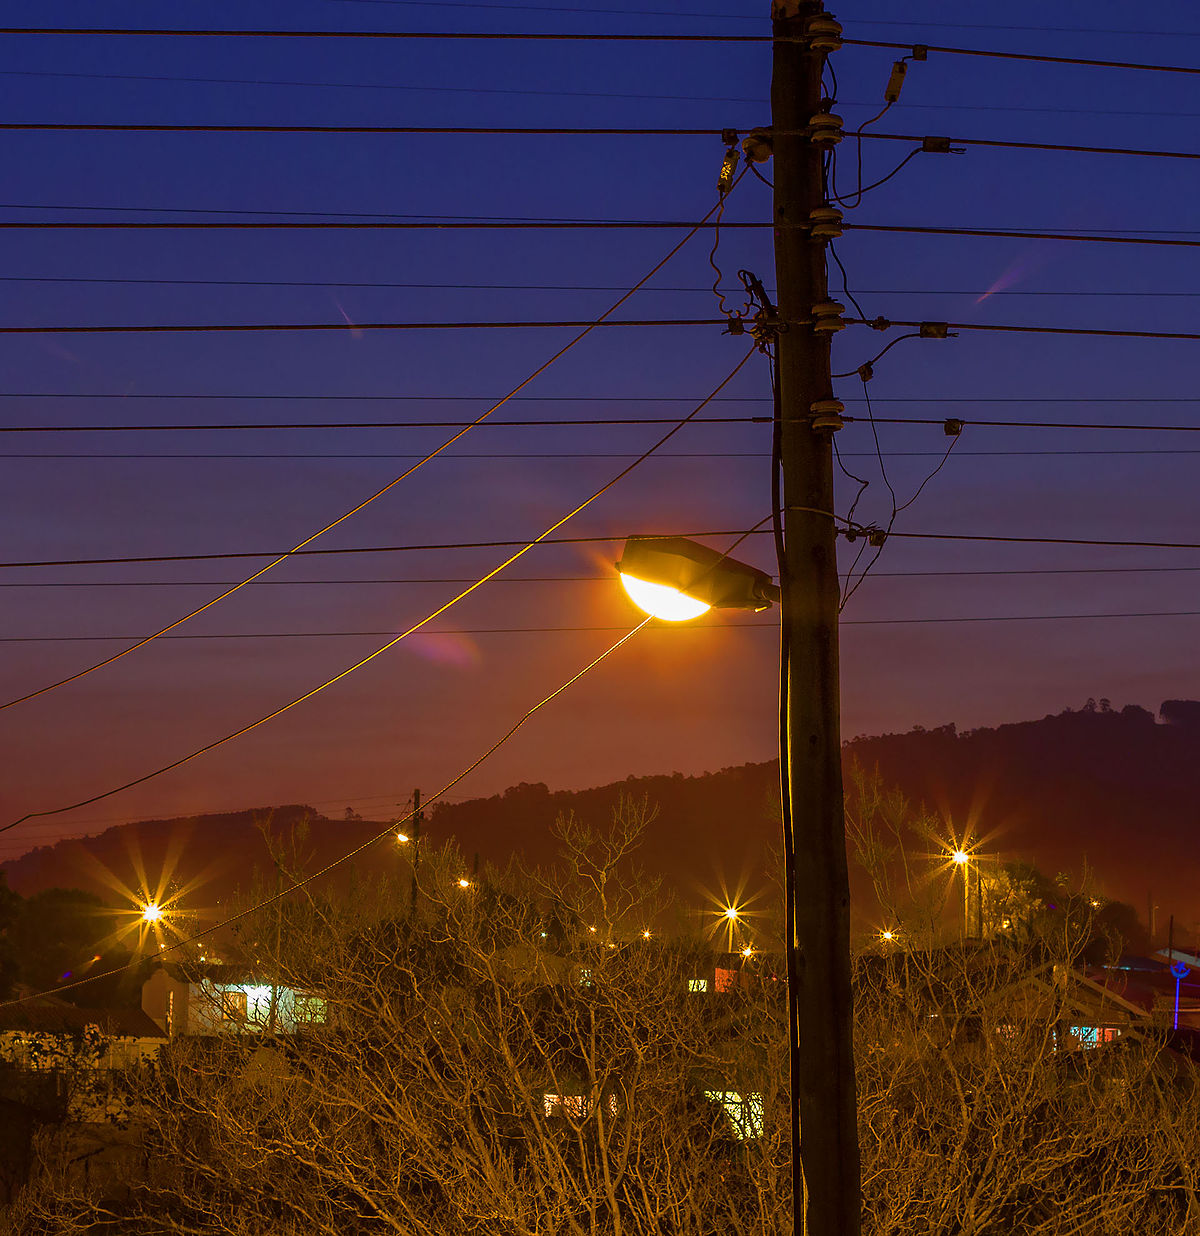 Street Light Wikipedia Smart Switches Require No Wiring Gizmodo Australia